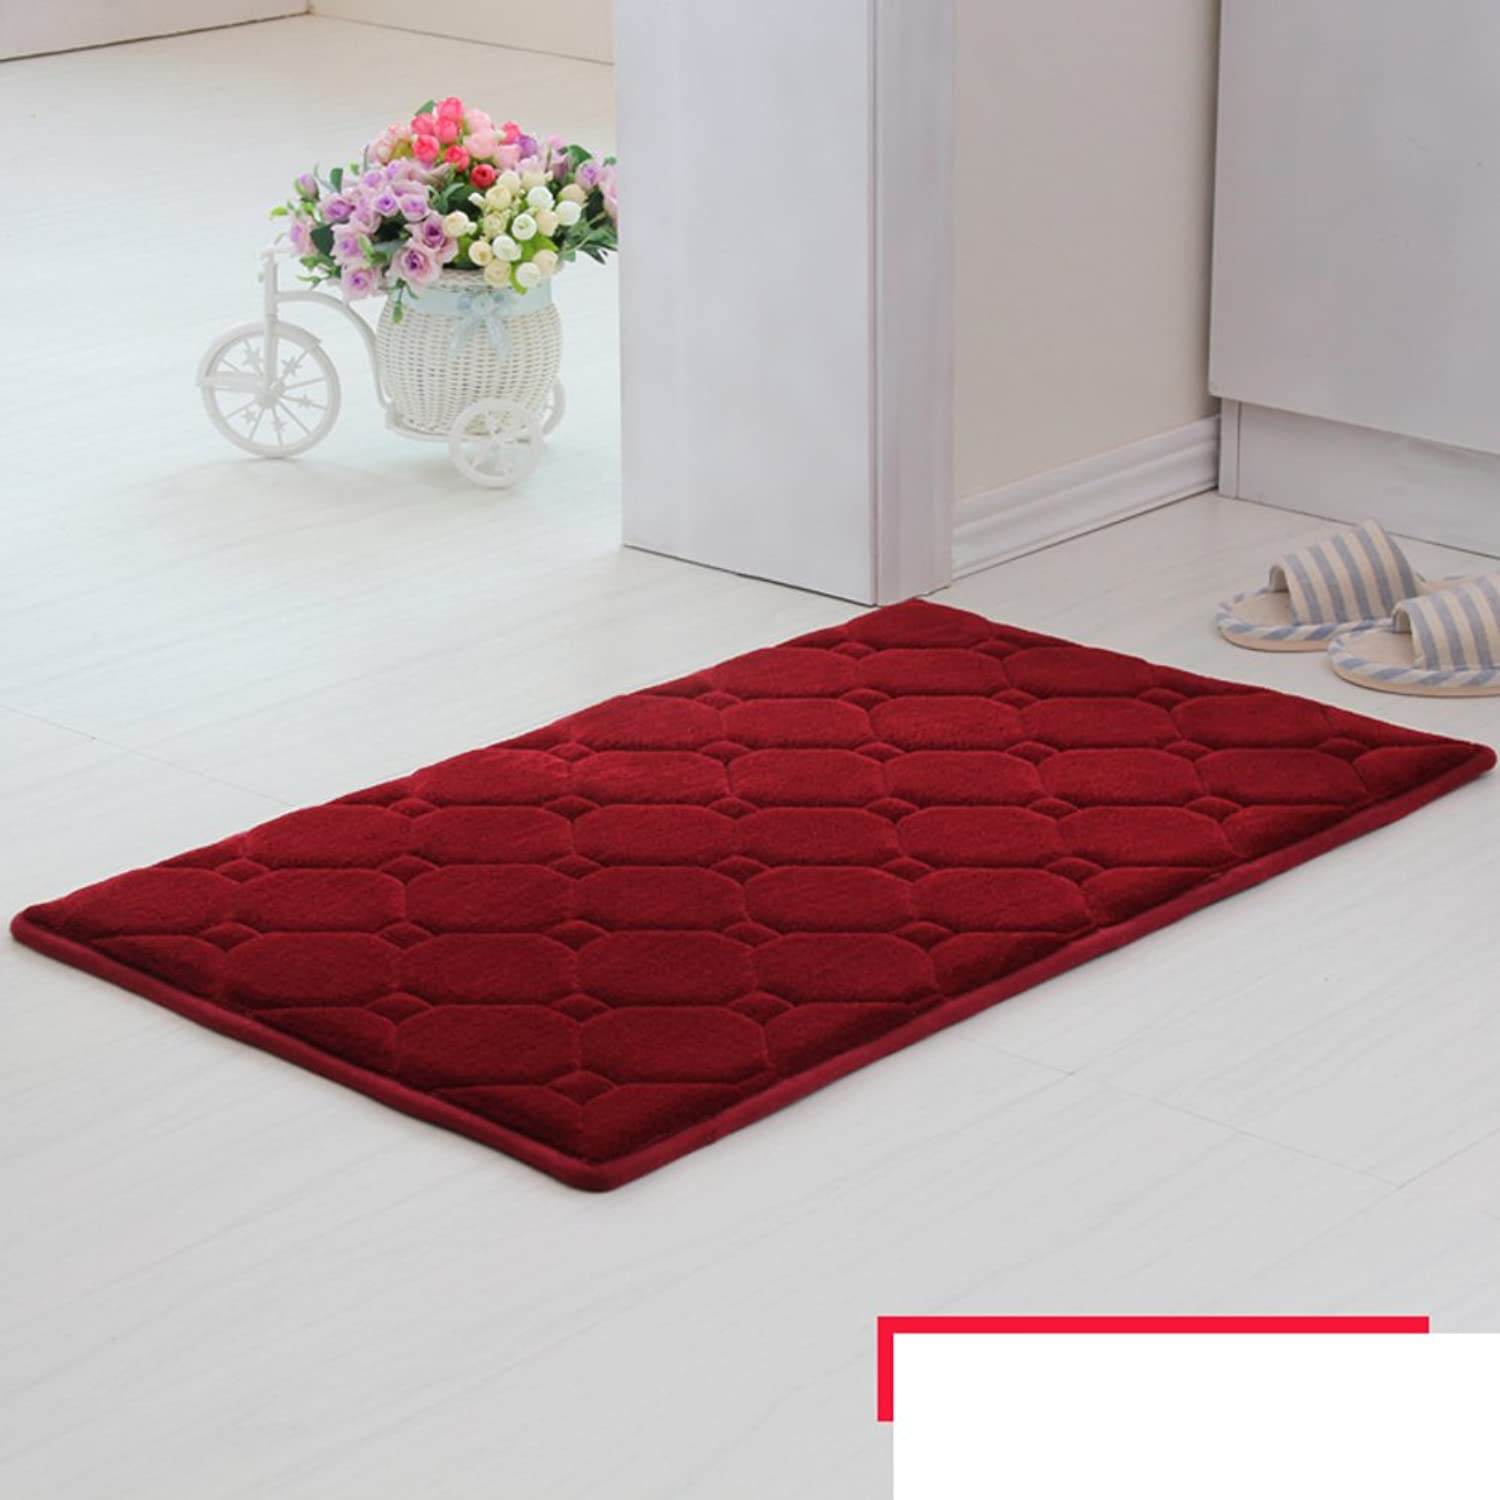 Memory Cotton mats Door mats Bathroom Living Room Kitchen Water Absorption Non-Slip mat-H 100x140cm(39x55inch)